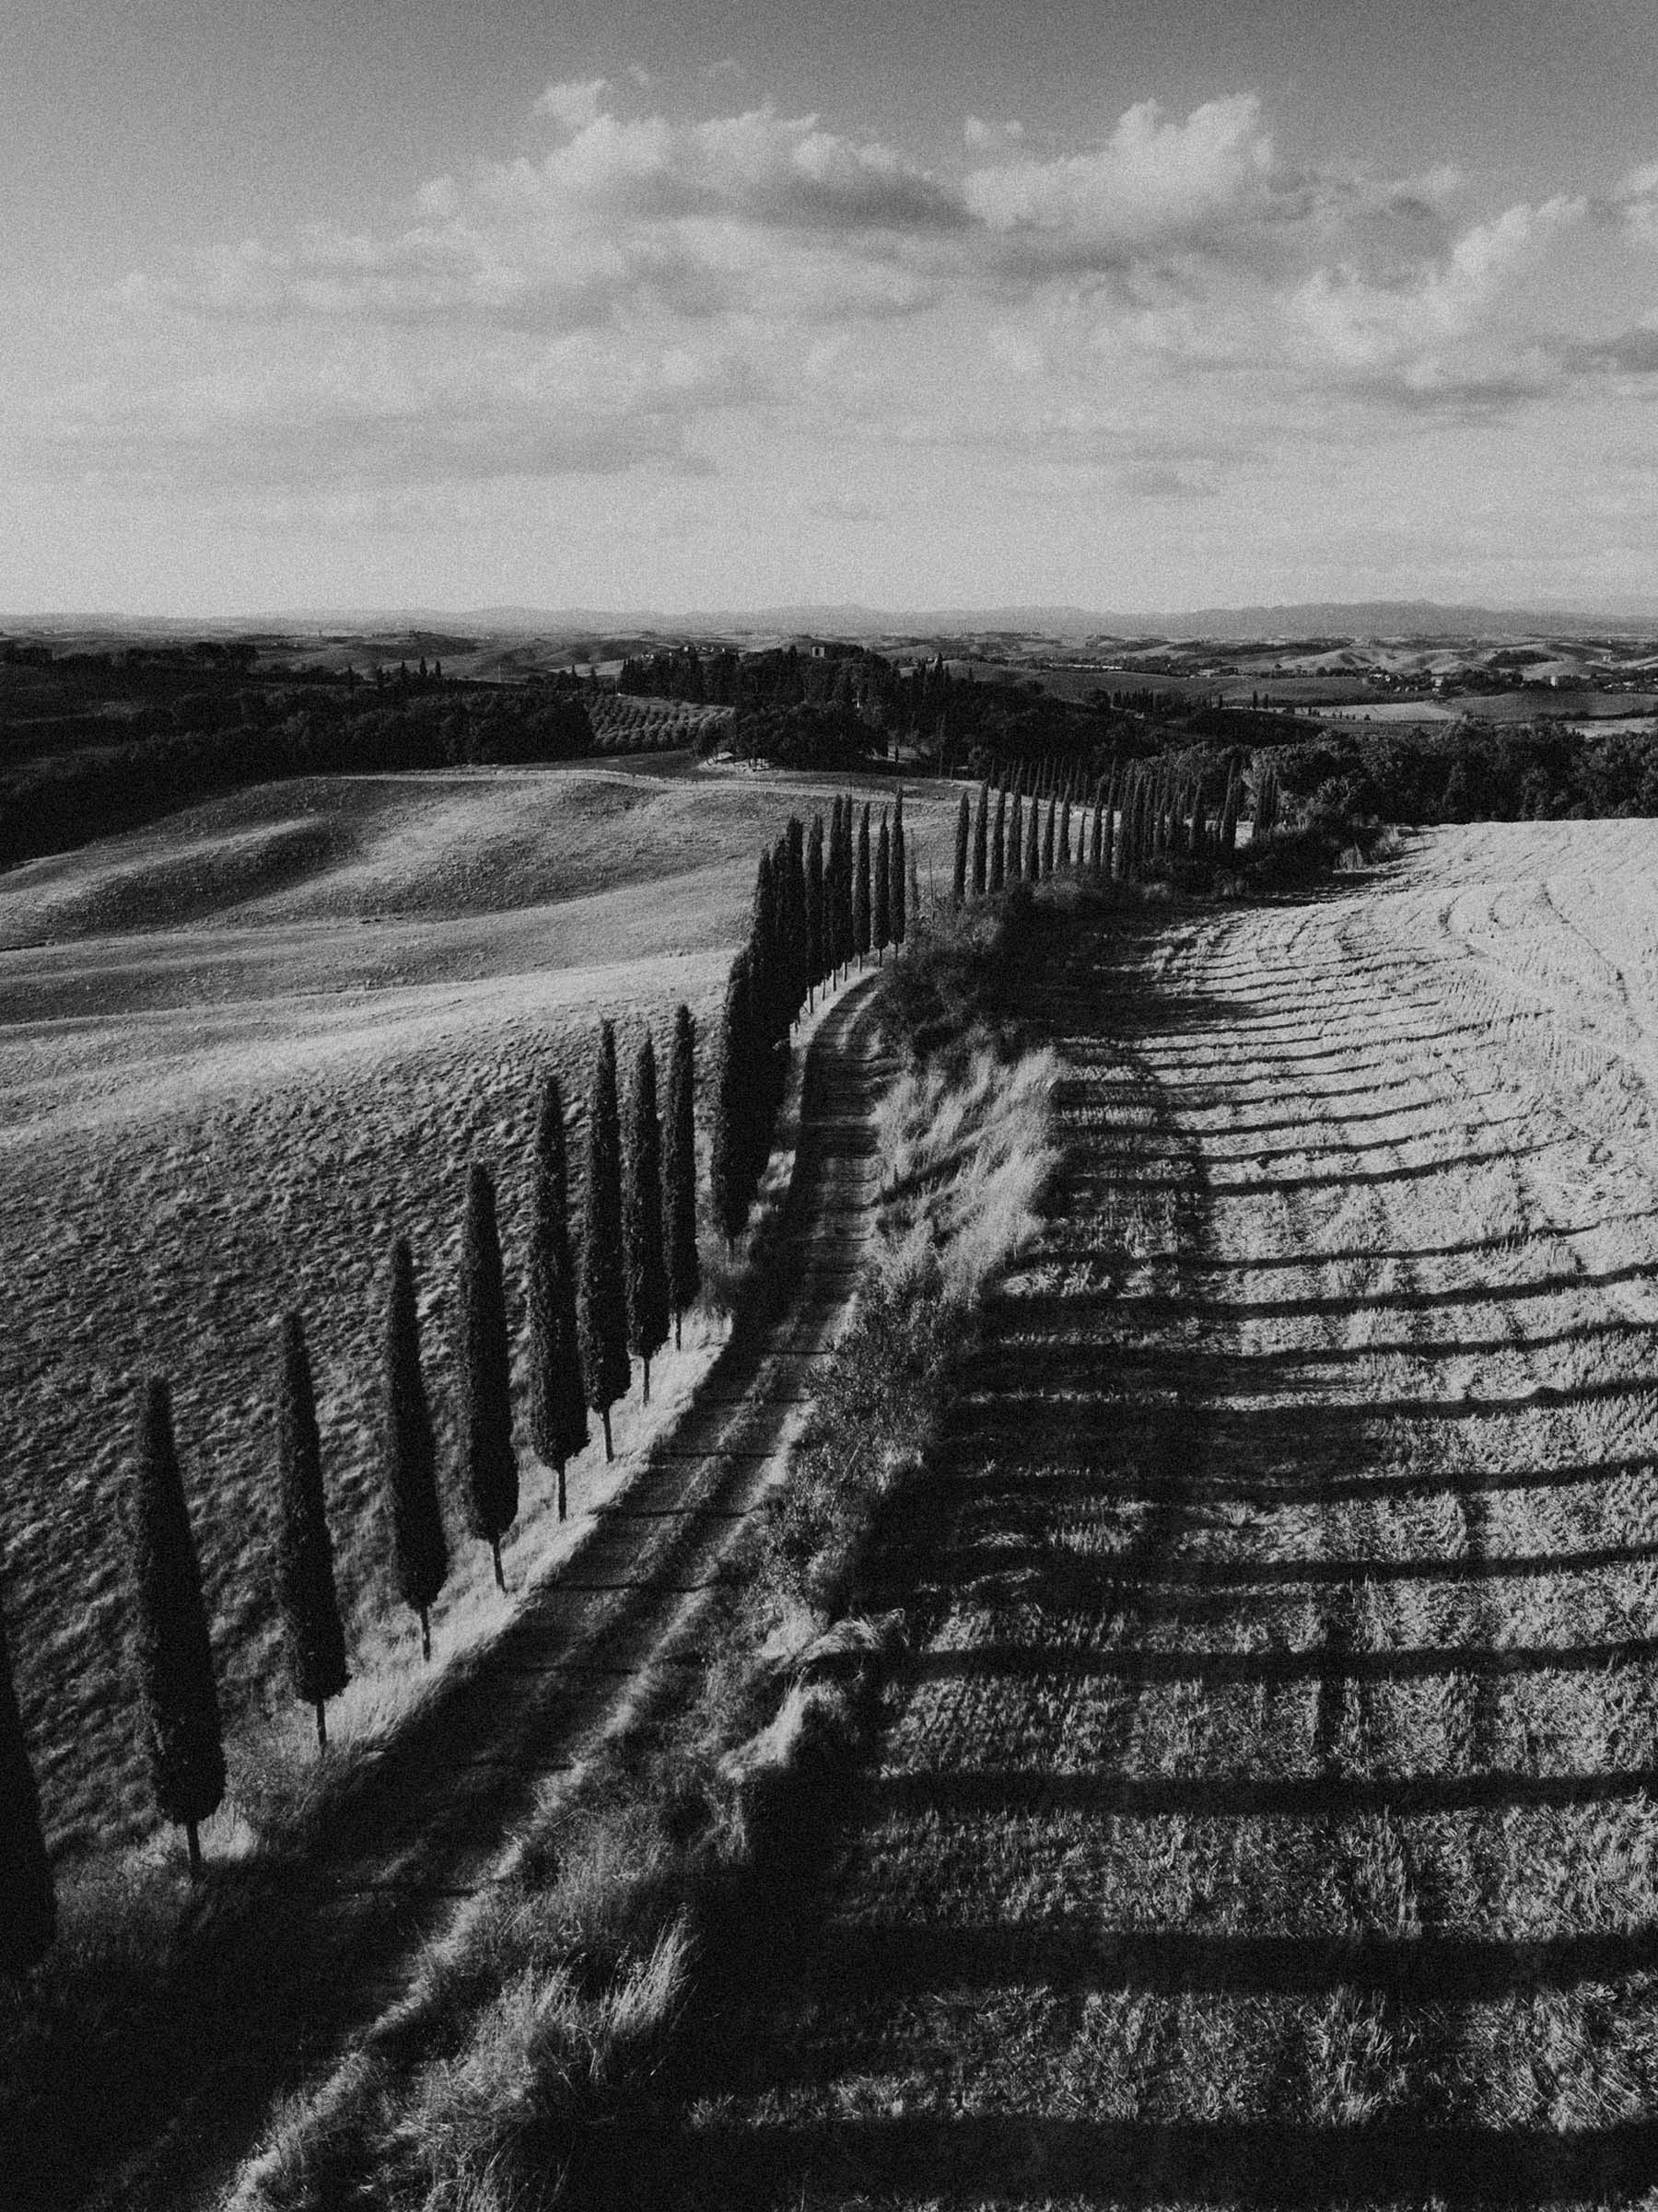 portrait drone photo of tuscany trees